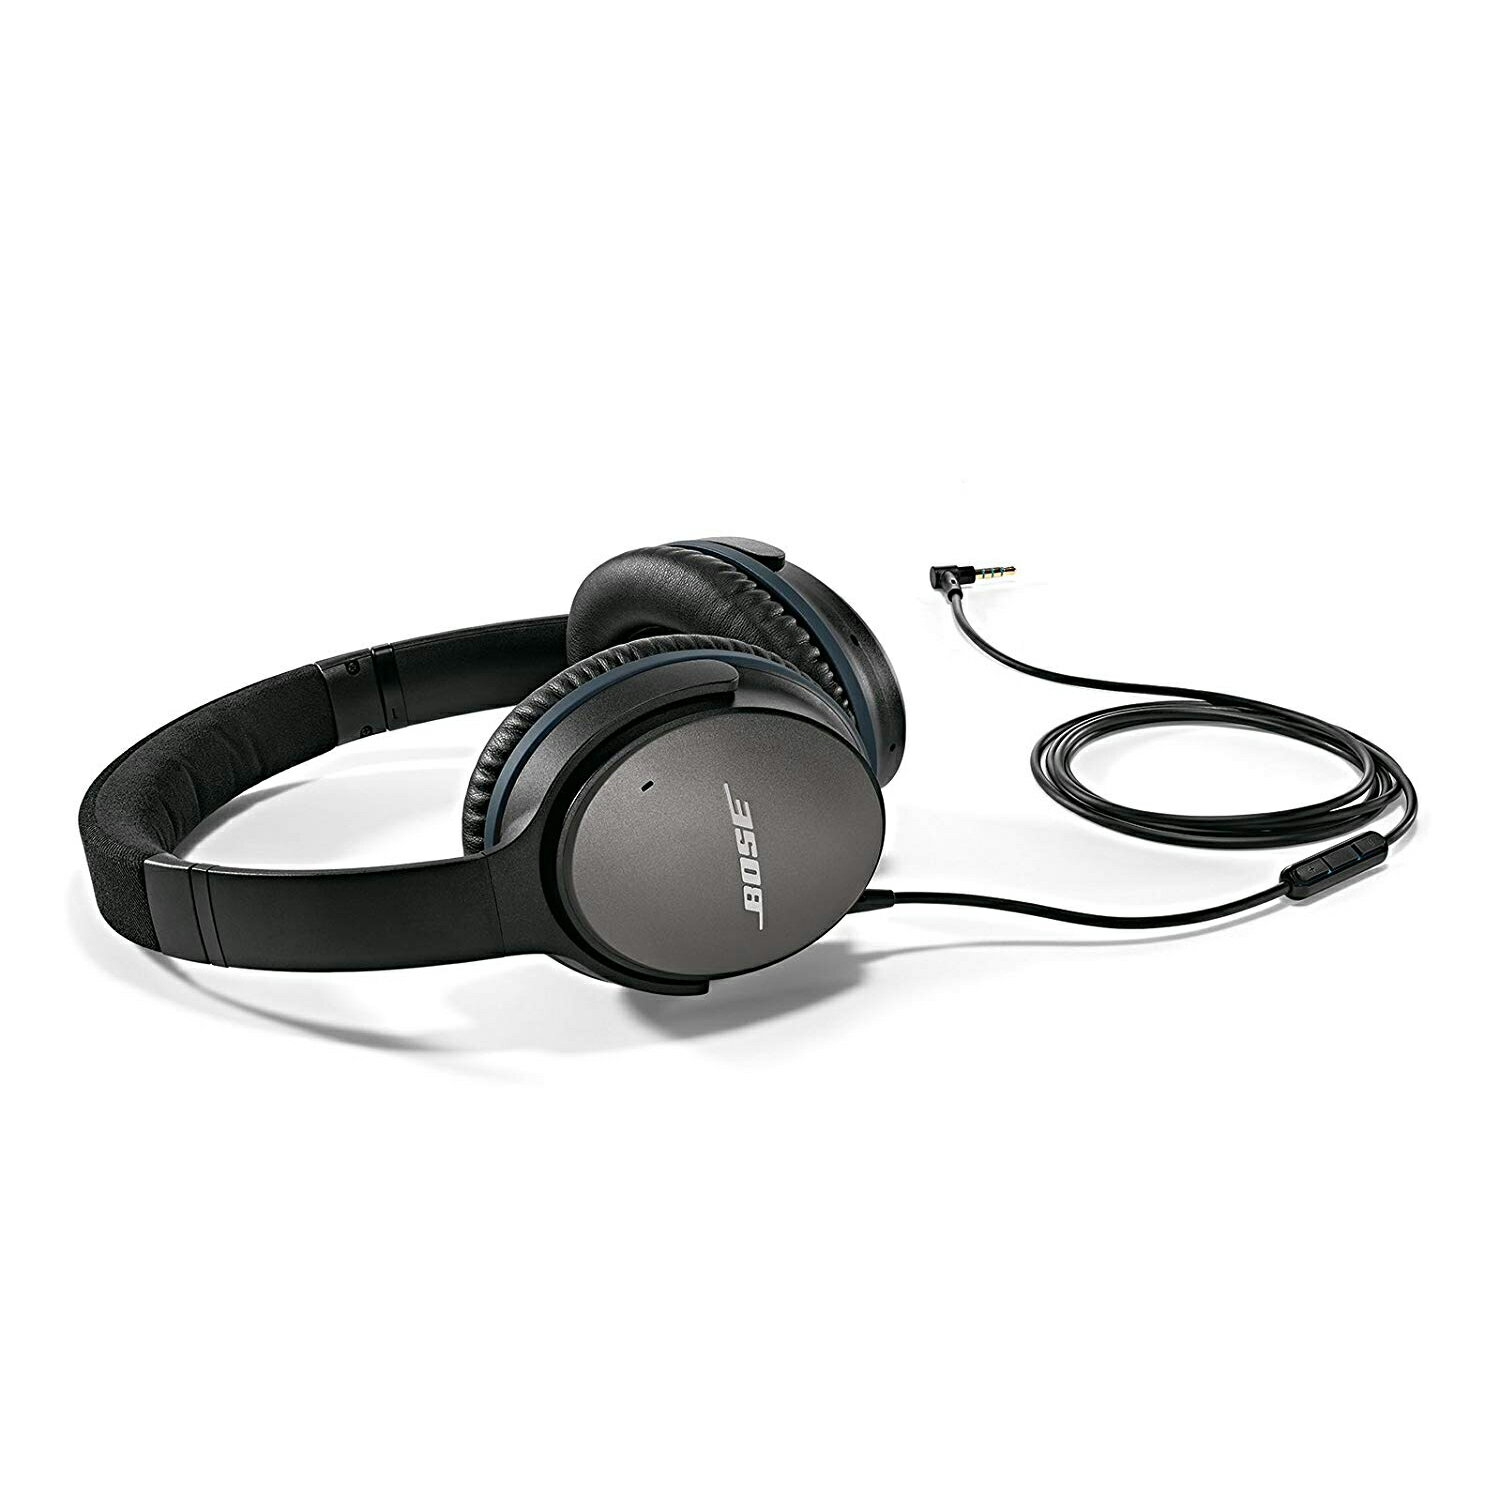 9e827a65244 Bose QuietComfort 25 Acoustic Noise Cancelling Headphones Samsung/Android  Black 0